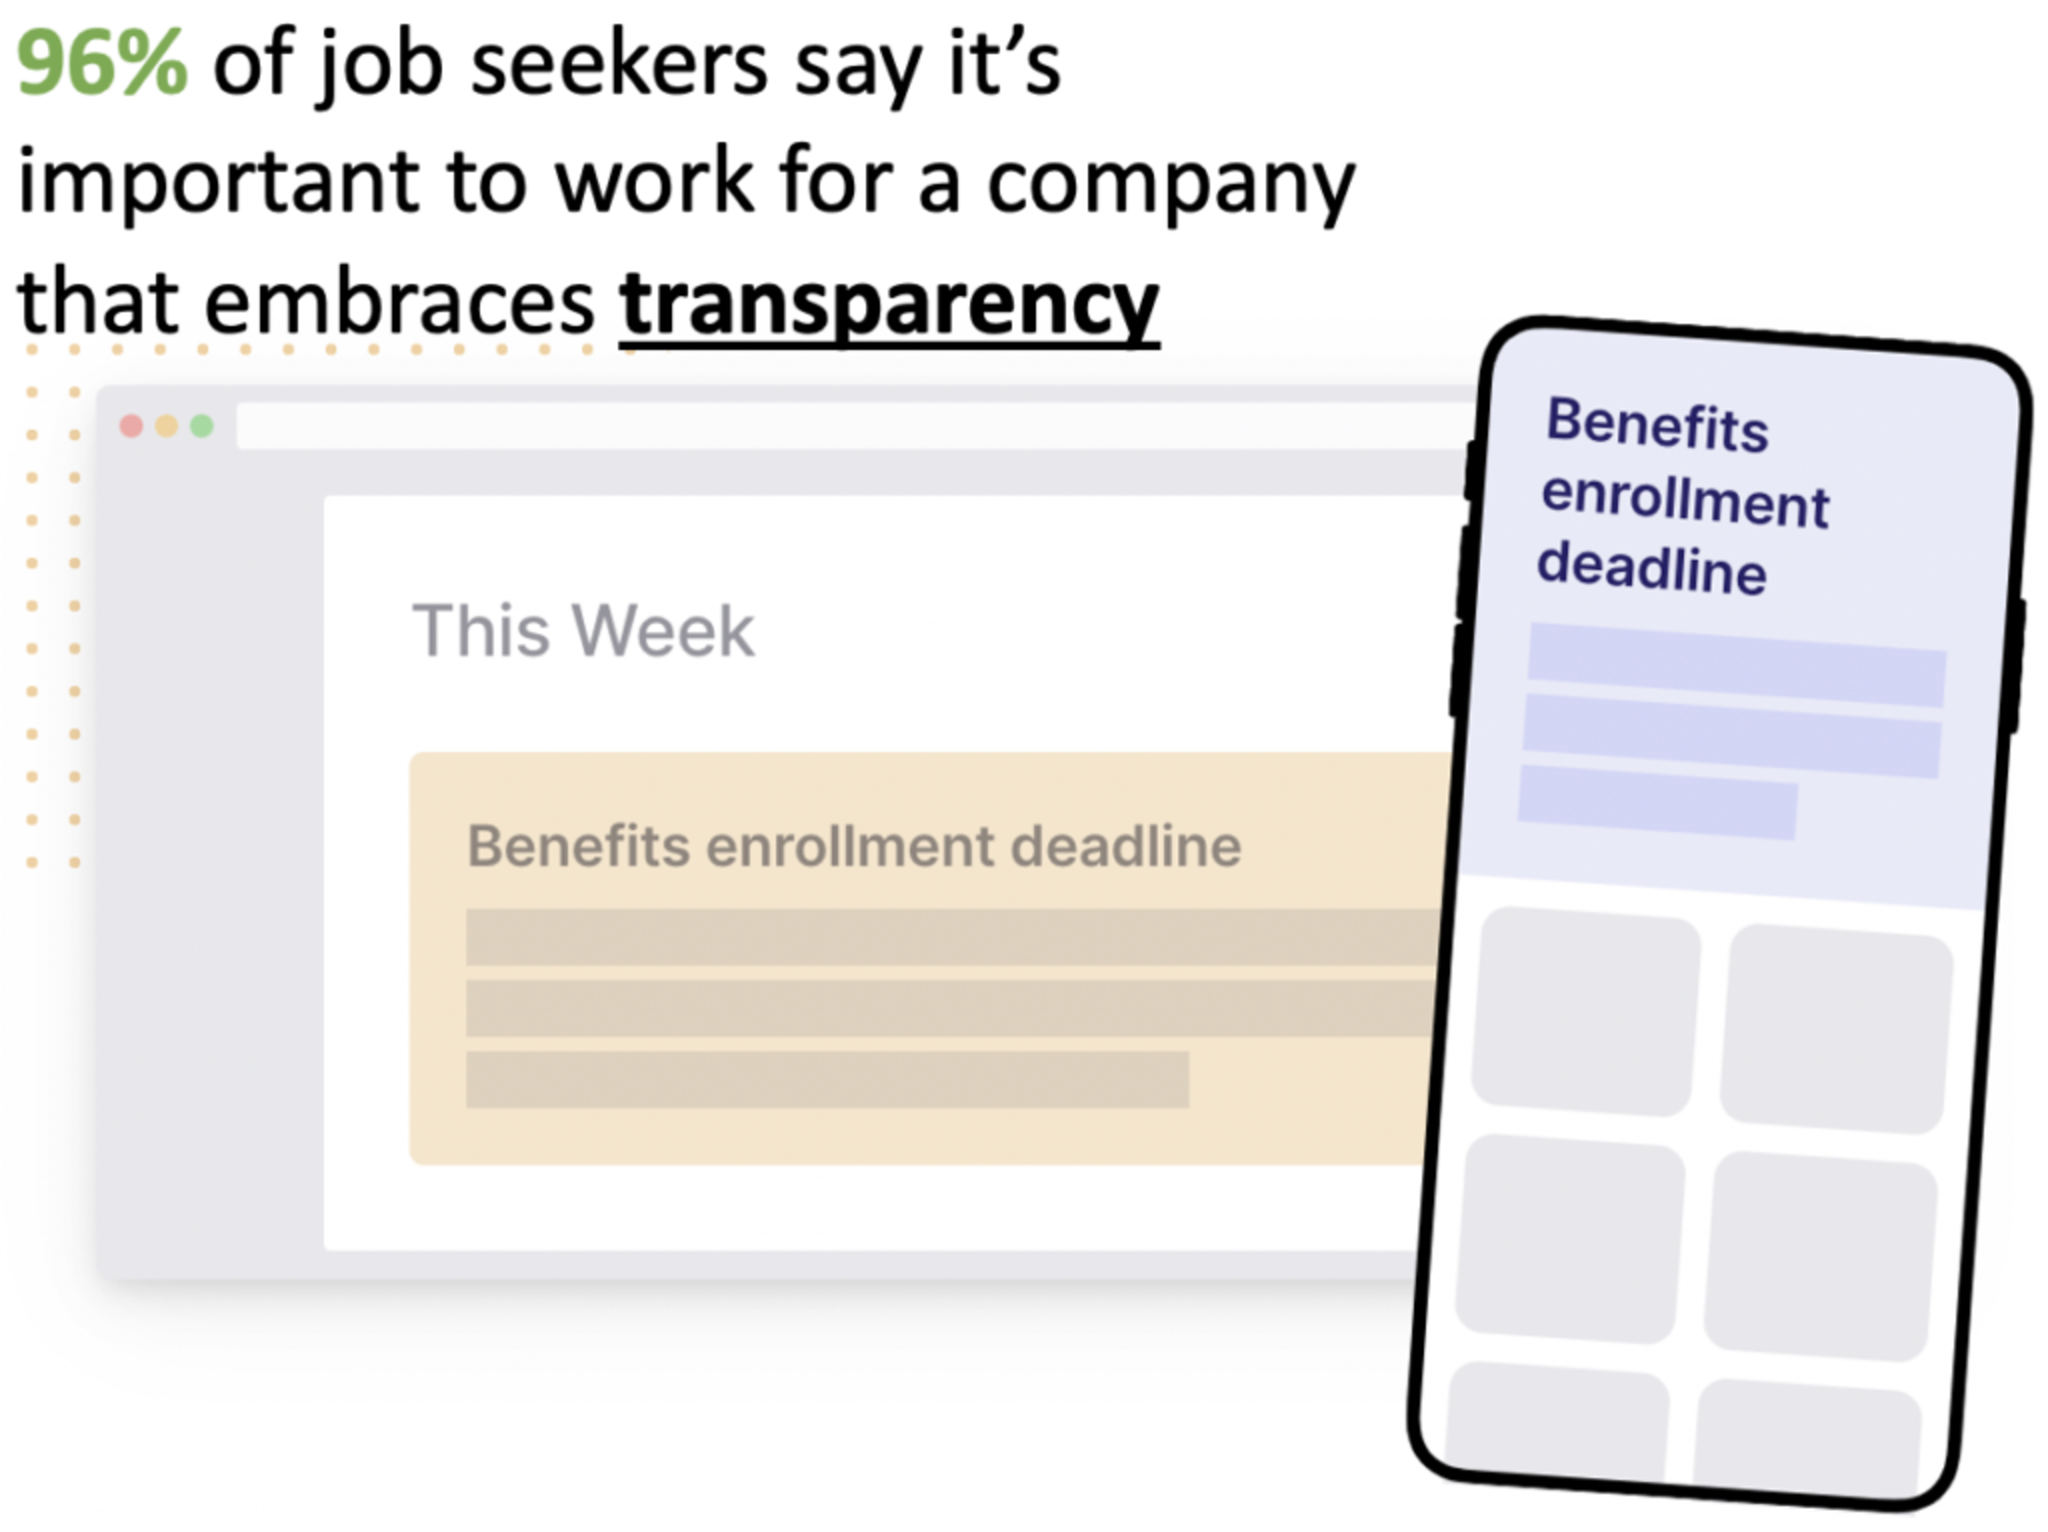 Workplace transparency quote